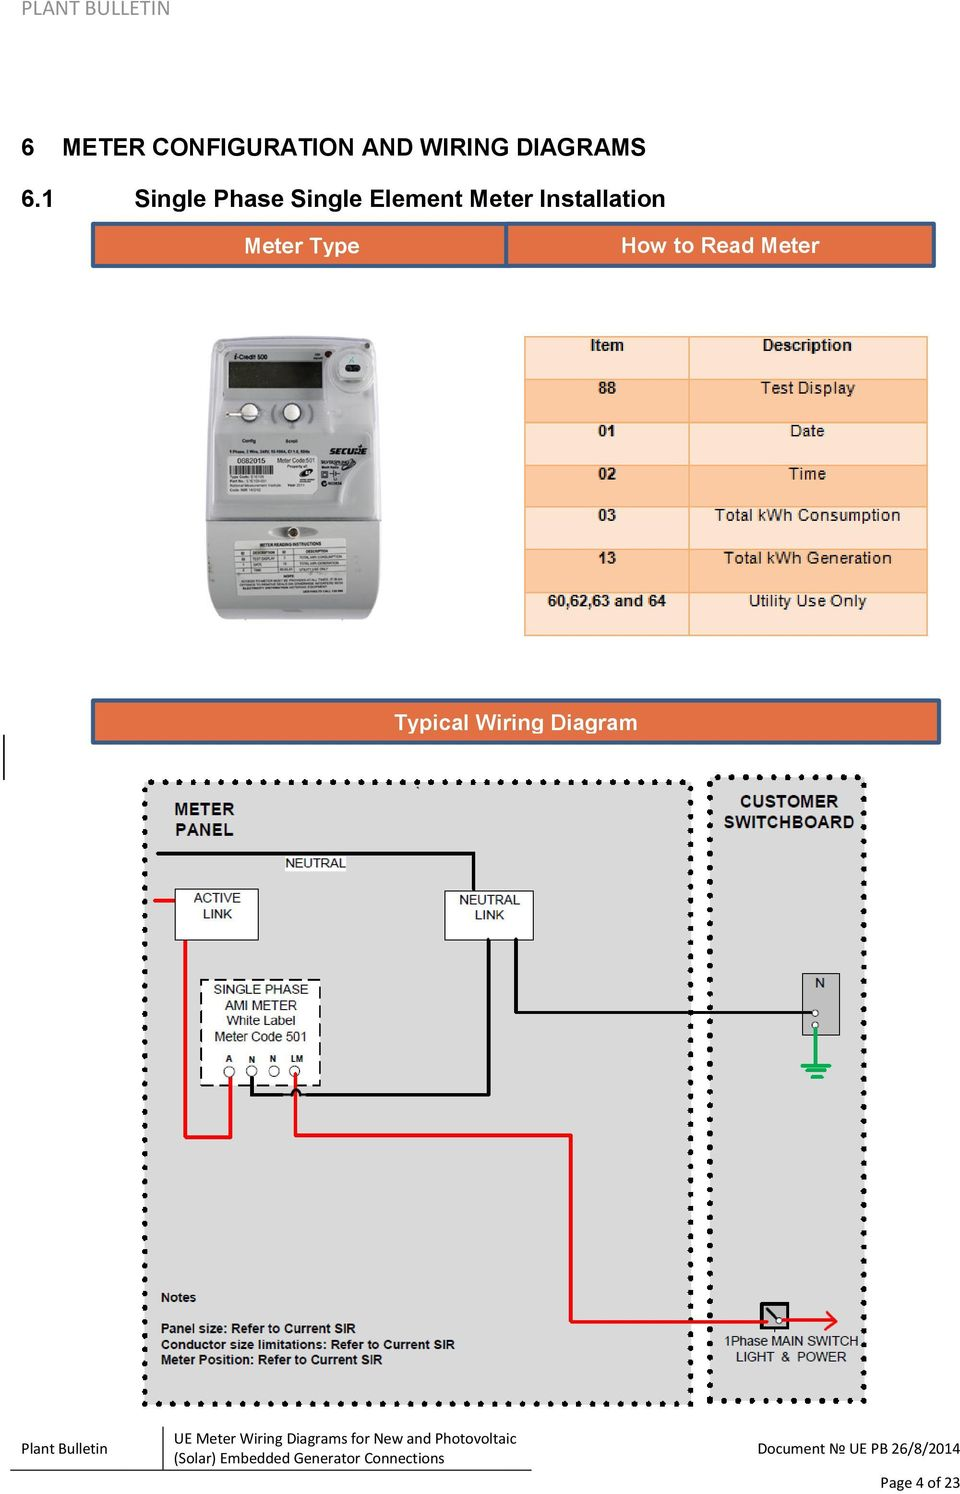 Ue Plant Bulletin Meter Wiring Diagrams For New And Photovoltaic Electric Diagram 1 Single Phase